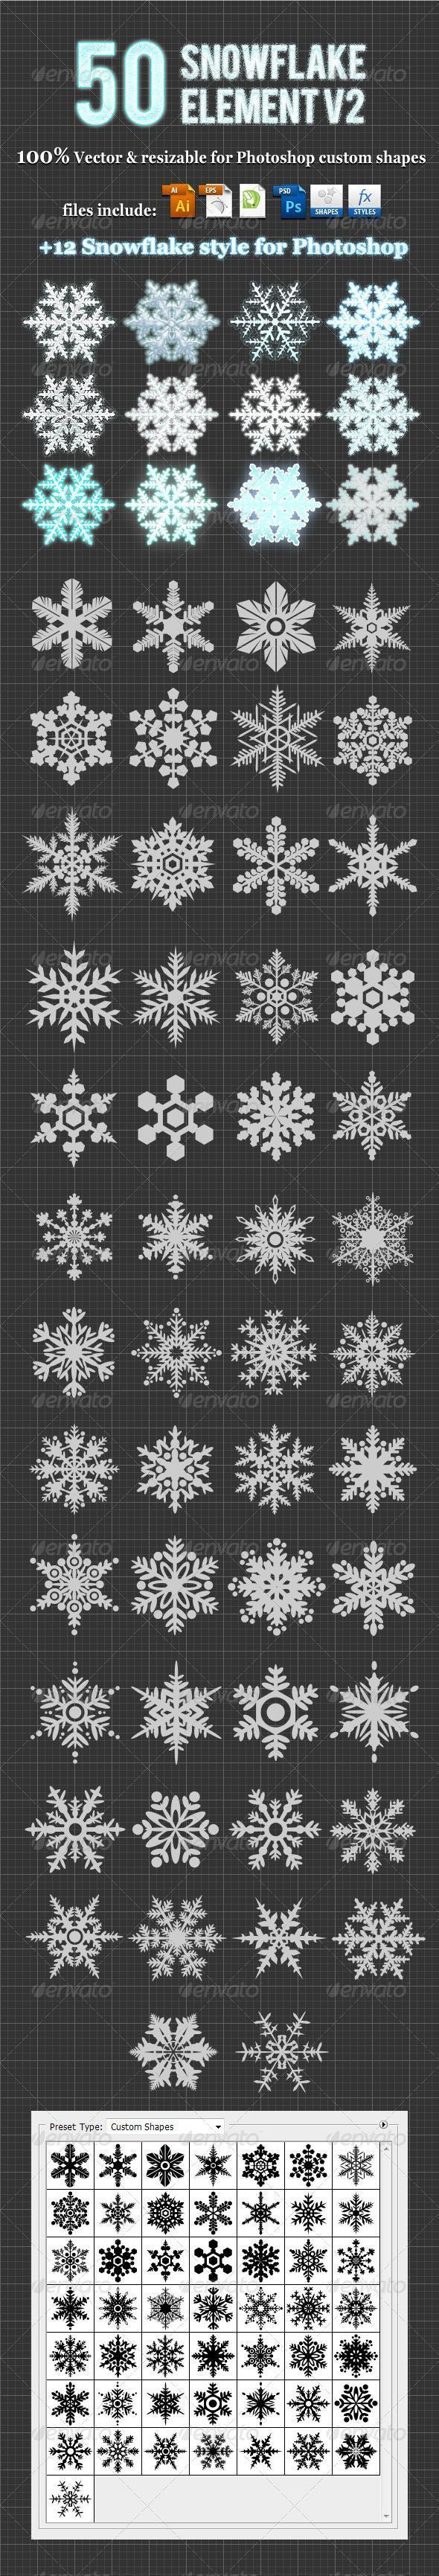 Snowflake Photoshop Custom Shapes